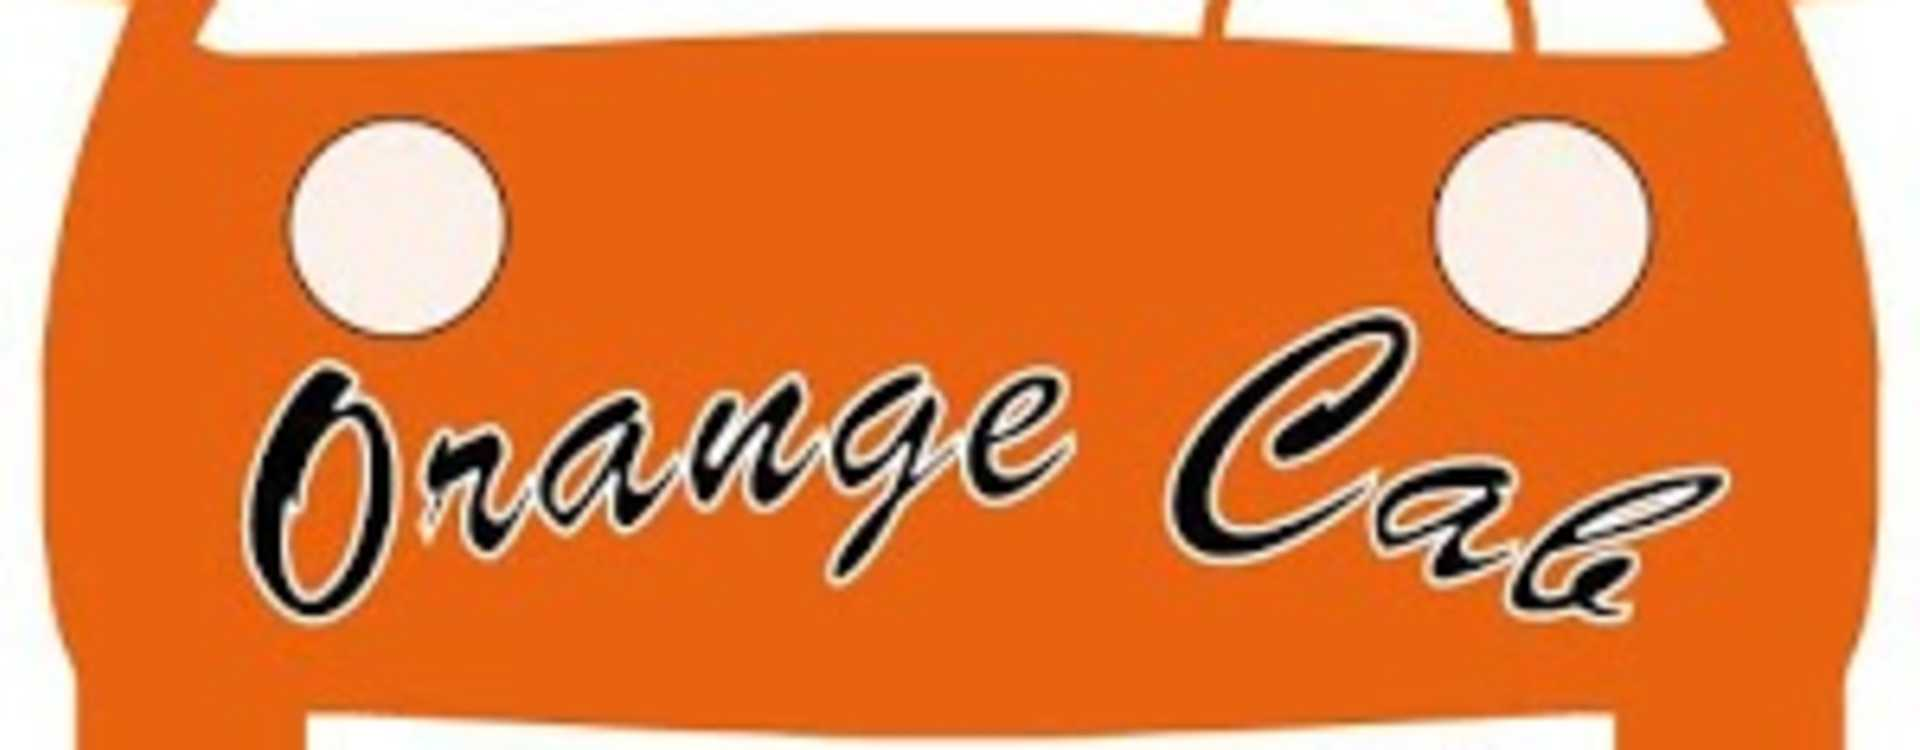 Orange_Cab_Company-3.jpg